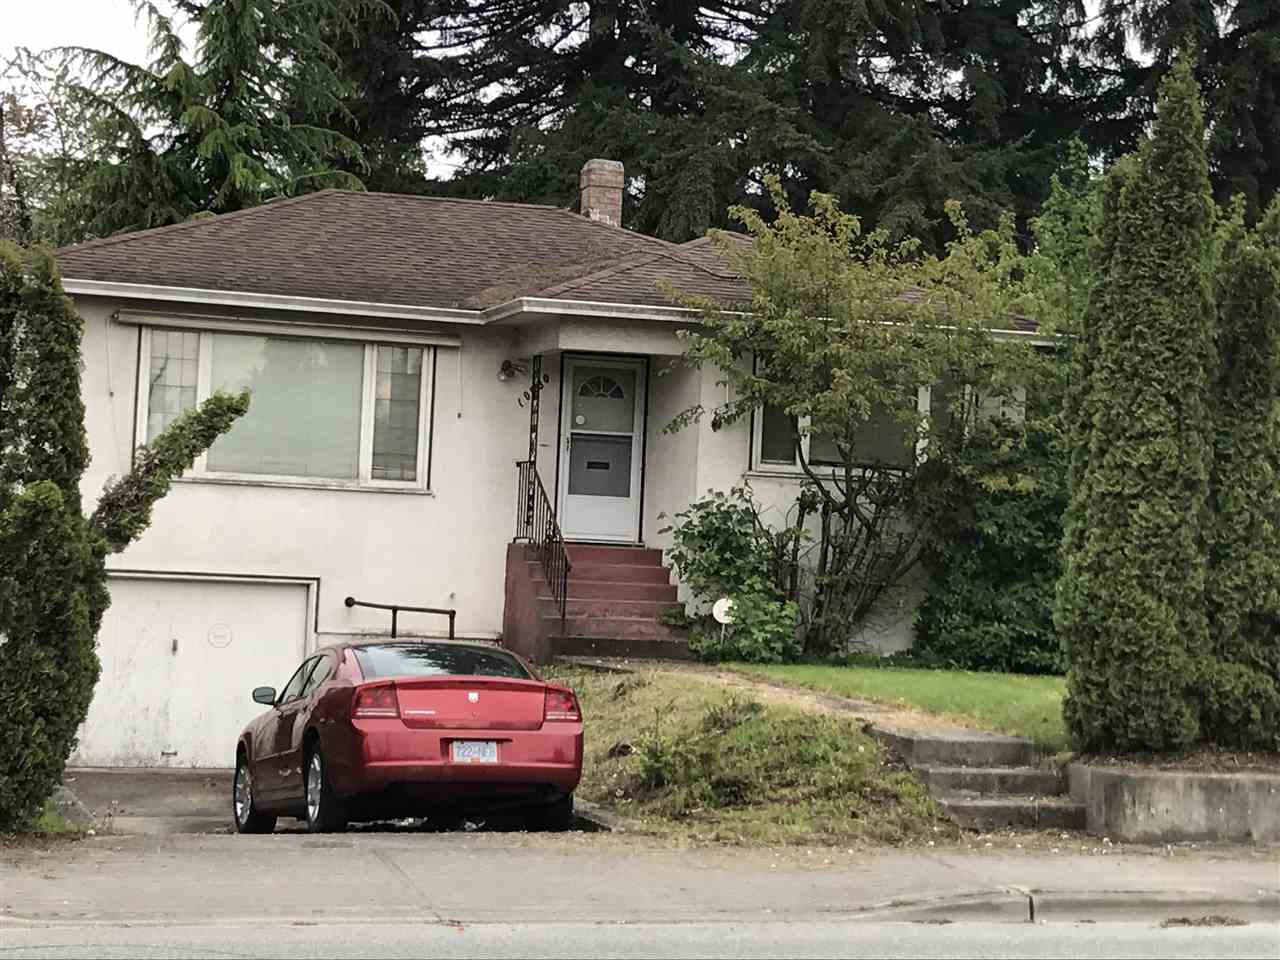 2 storey house on big lot. All measurements are approximately buyer or buyer's agent to verify.